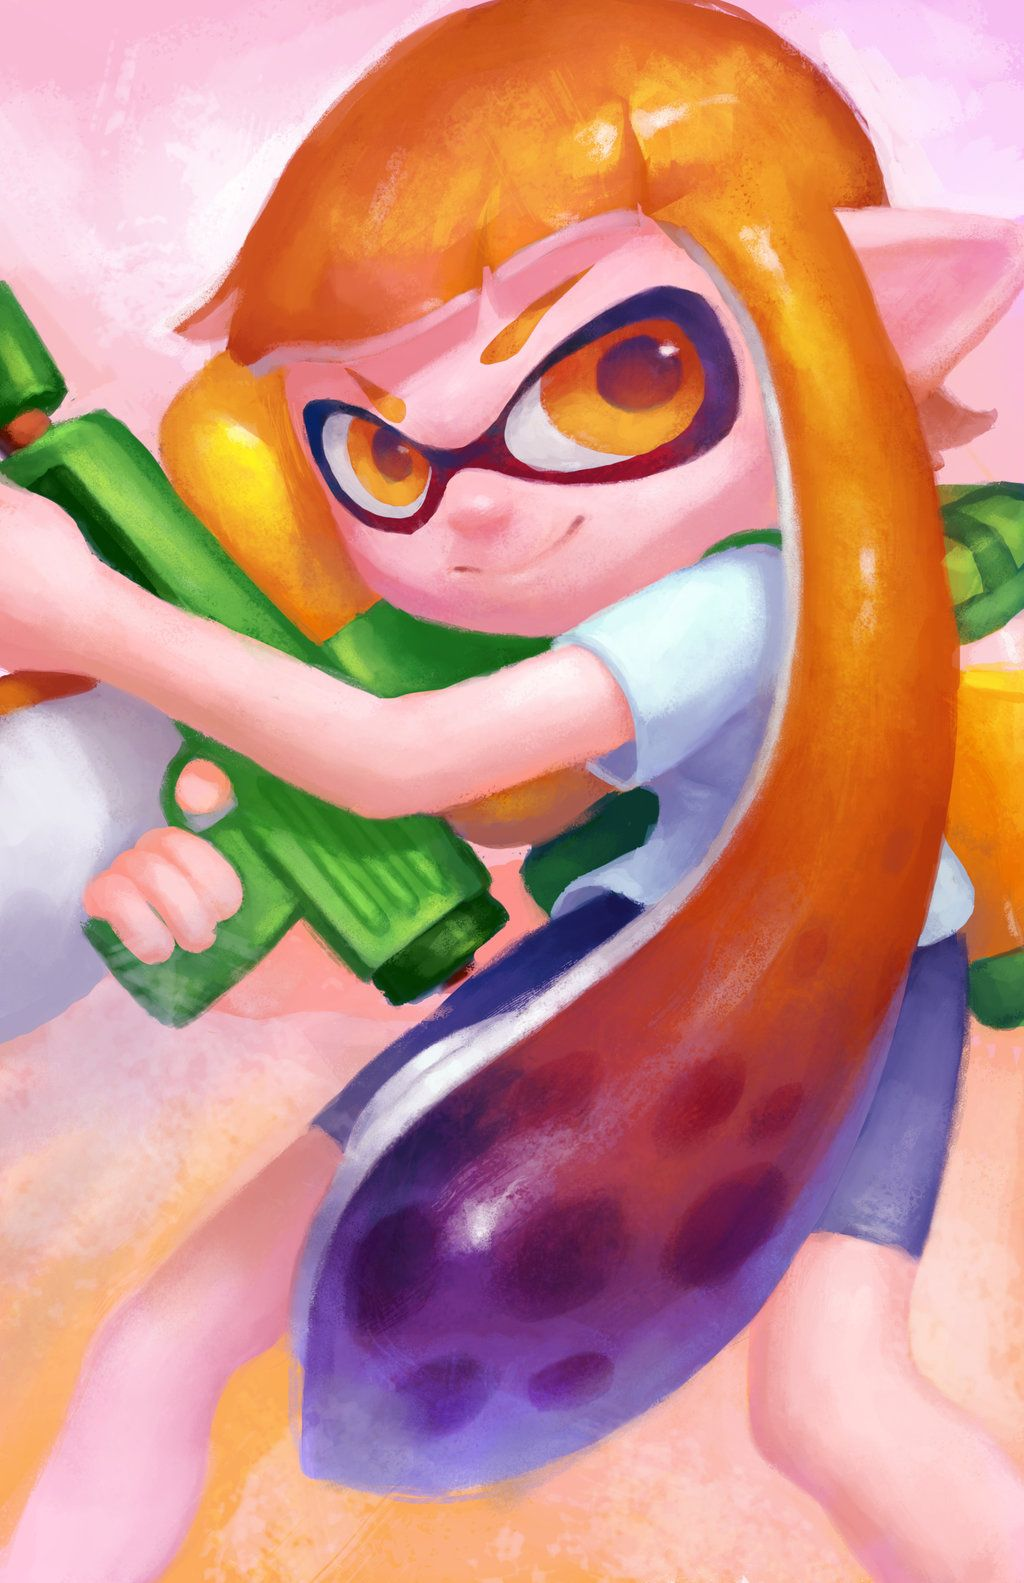 The Girl Inkling by Tvonn9.deviantart.com on @DeviantArt